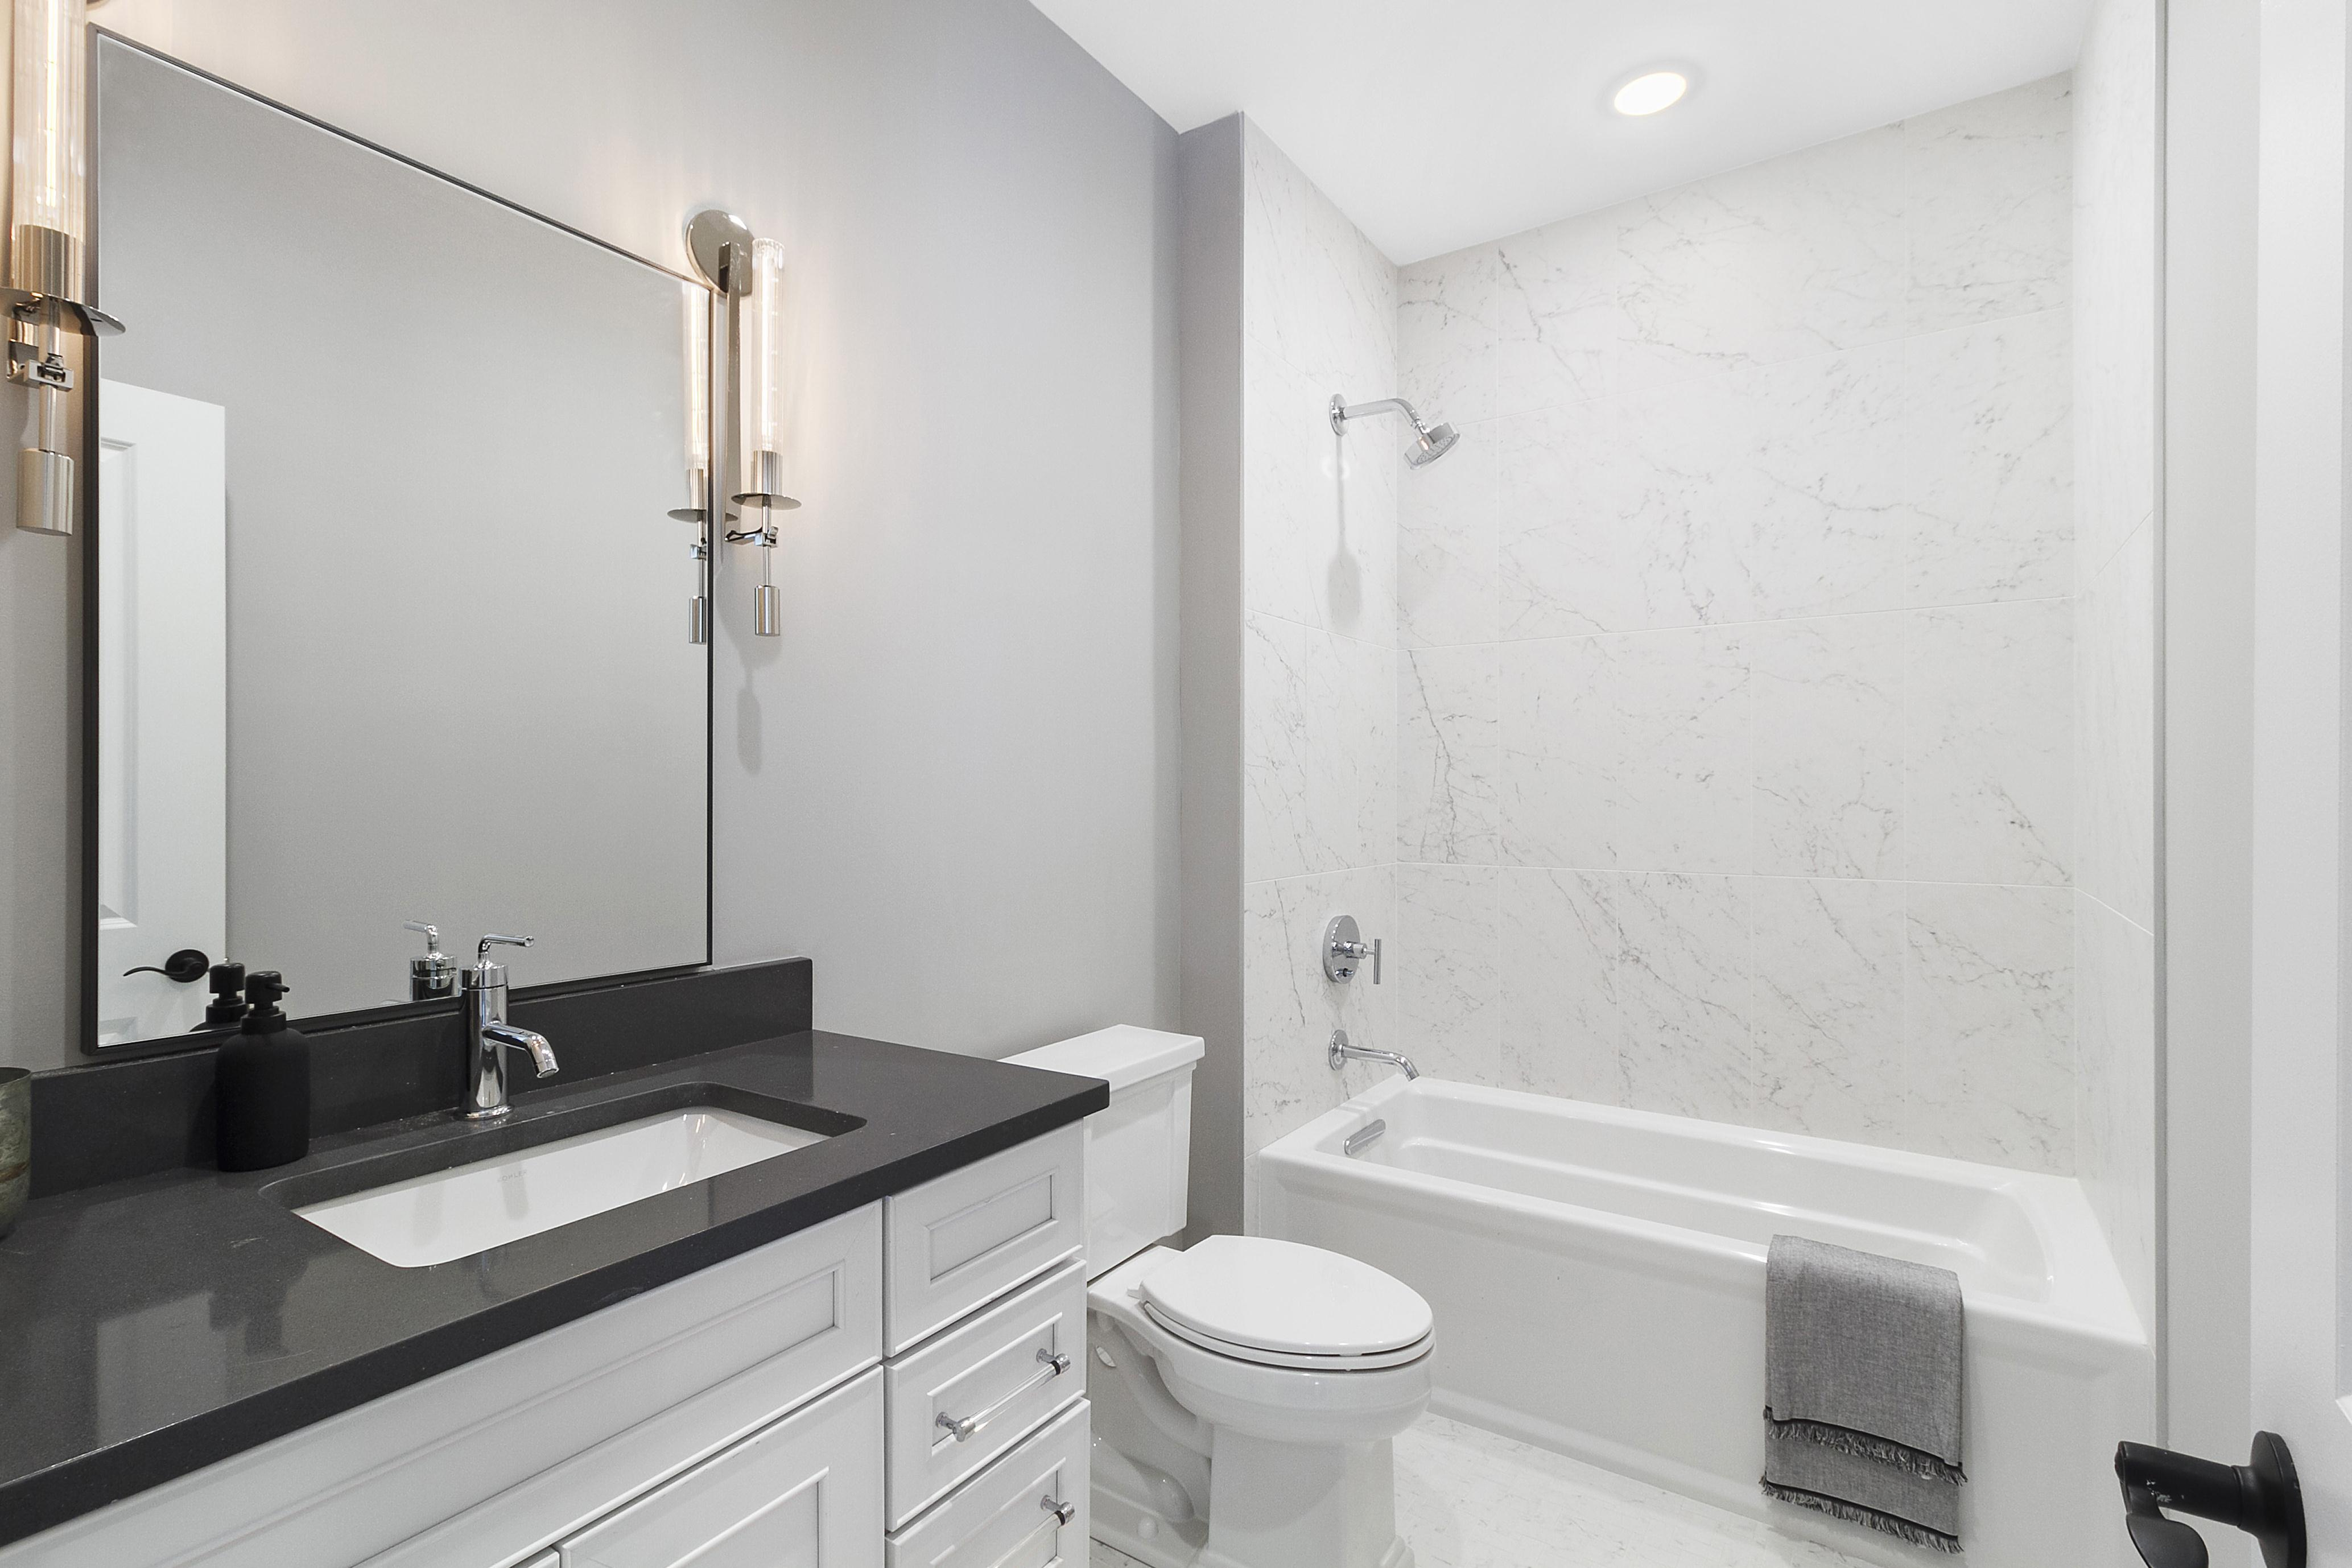 Bathroom featured in The Eastbourne By Beechwood Homes in Nassau-Suffolk, NY